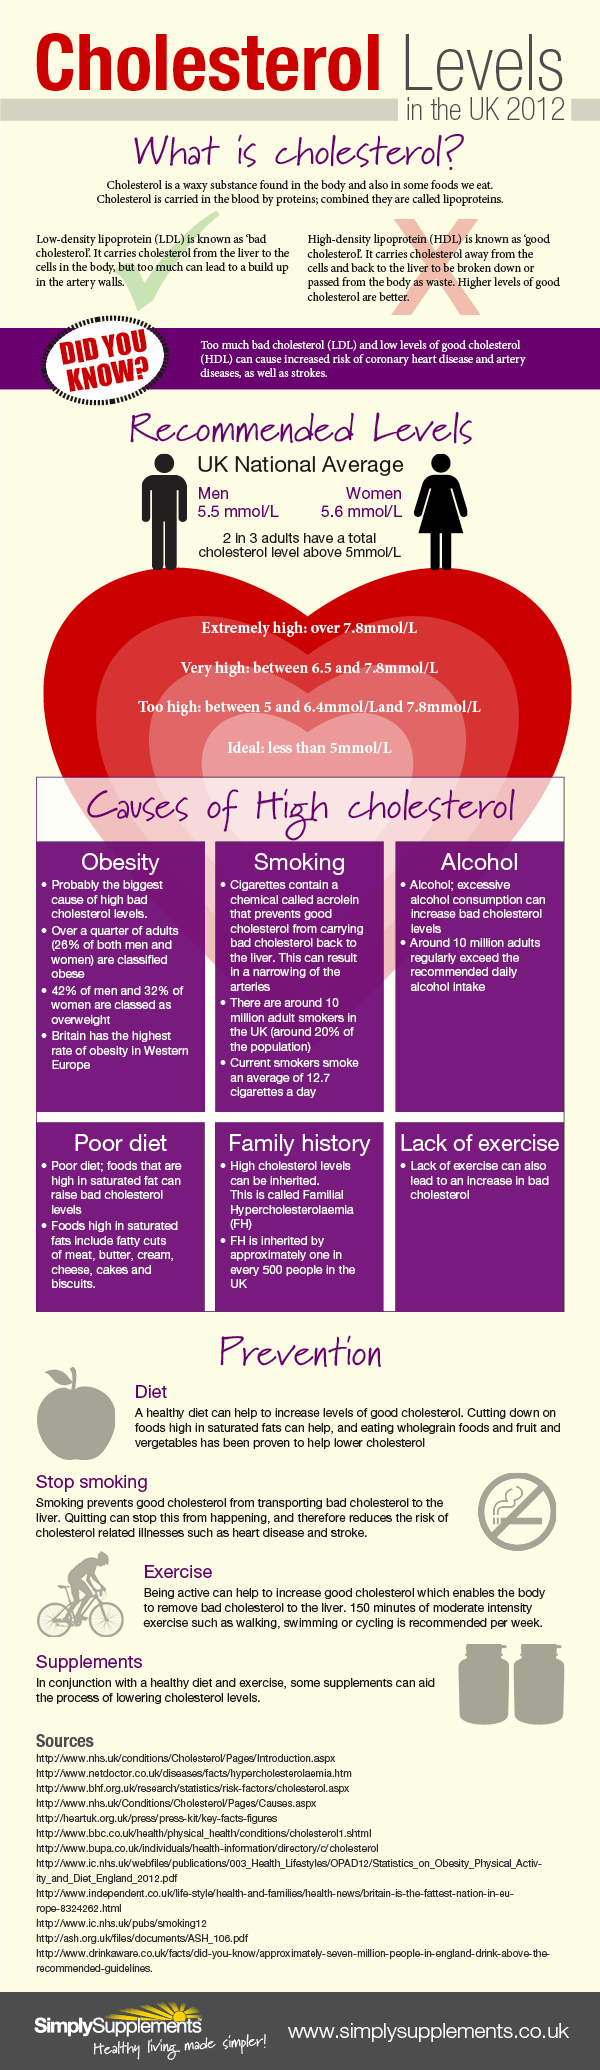 cholesterol-levels-in-the-uk-2012--how-to-protect-yourself_50af54f2c669c